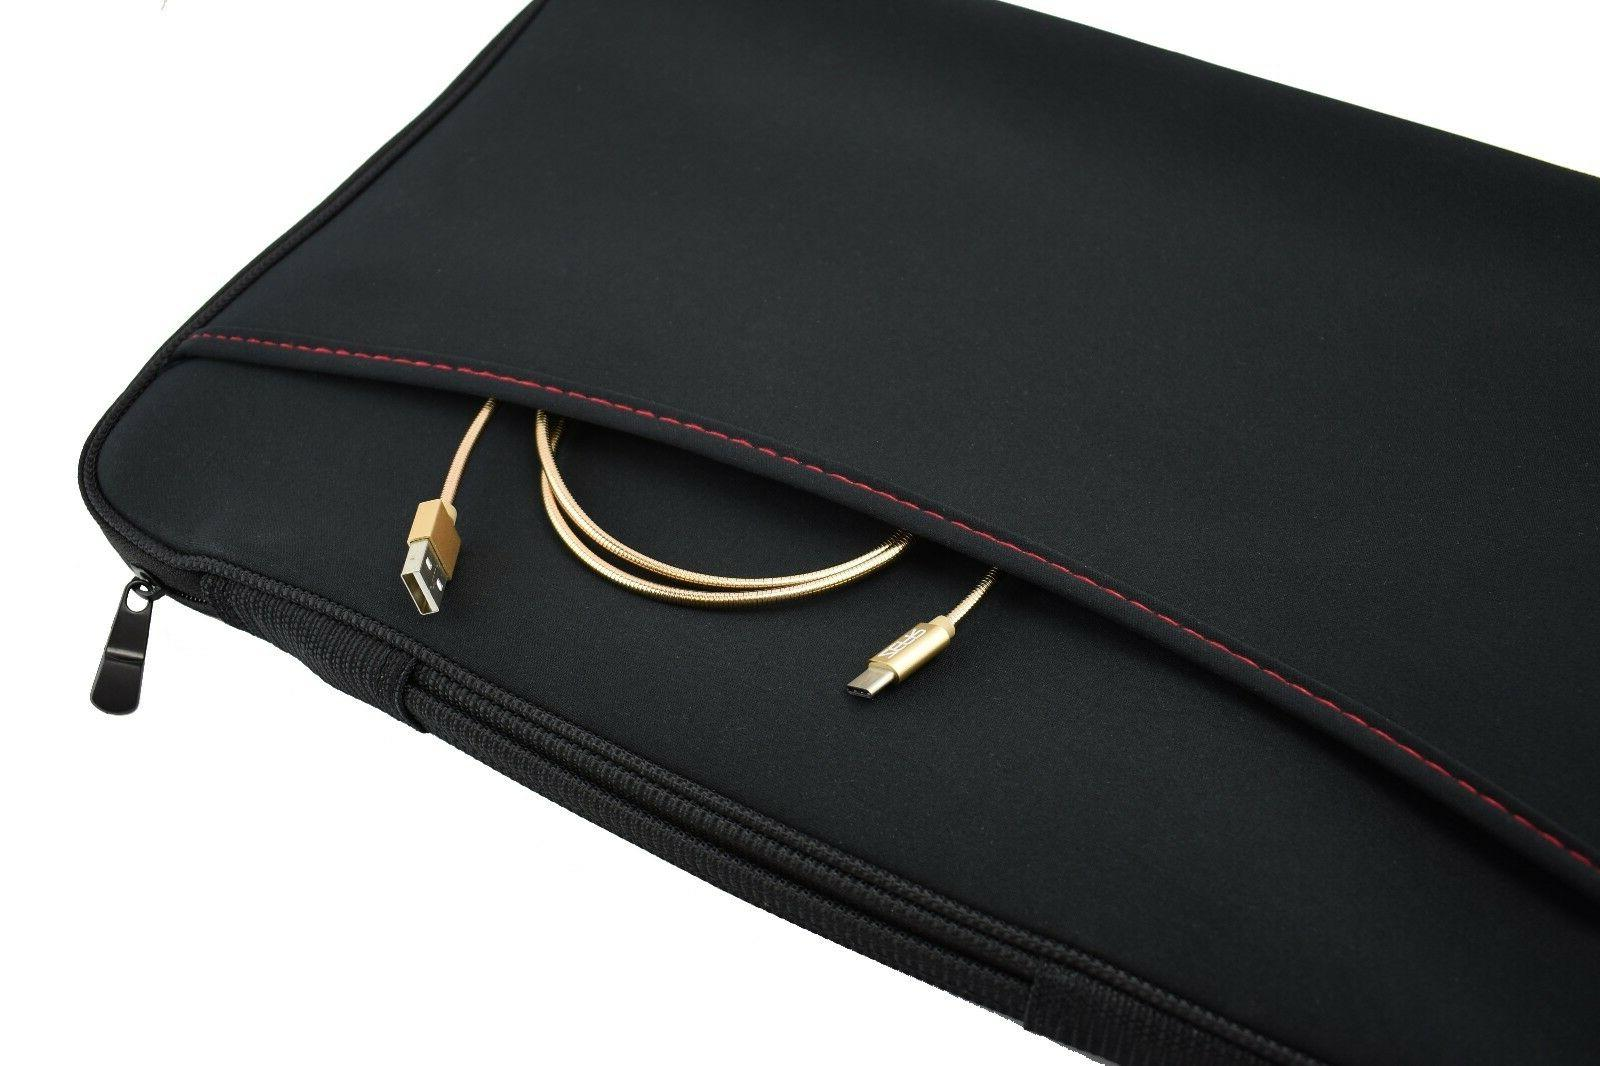 Logitech Portable Laptop Notebook Sleeve For